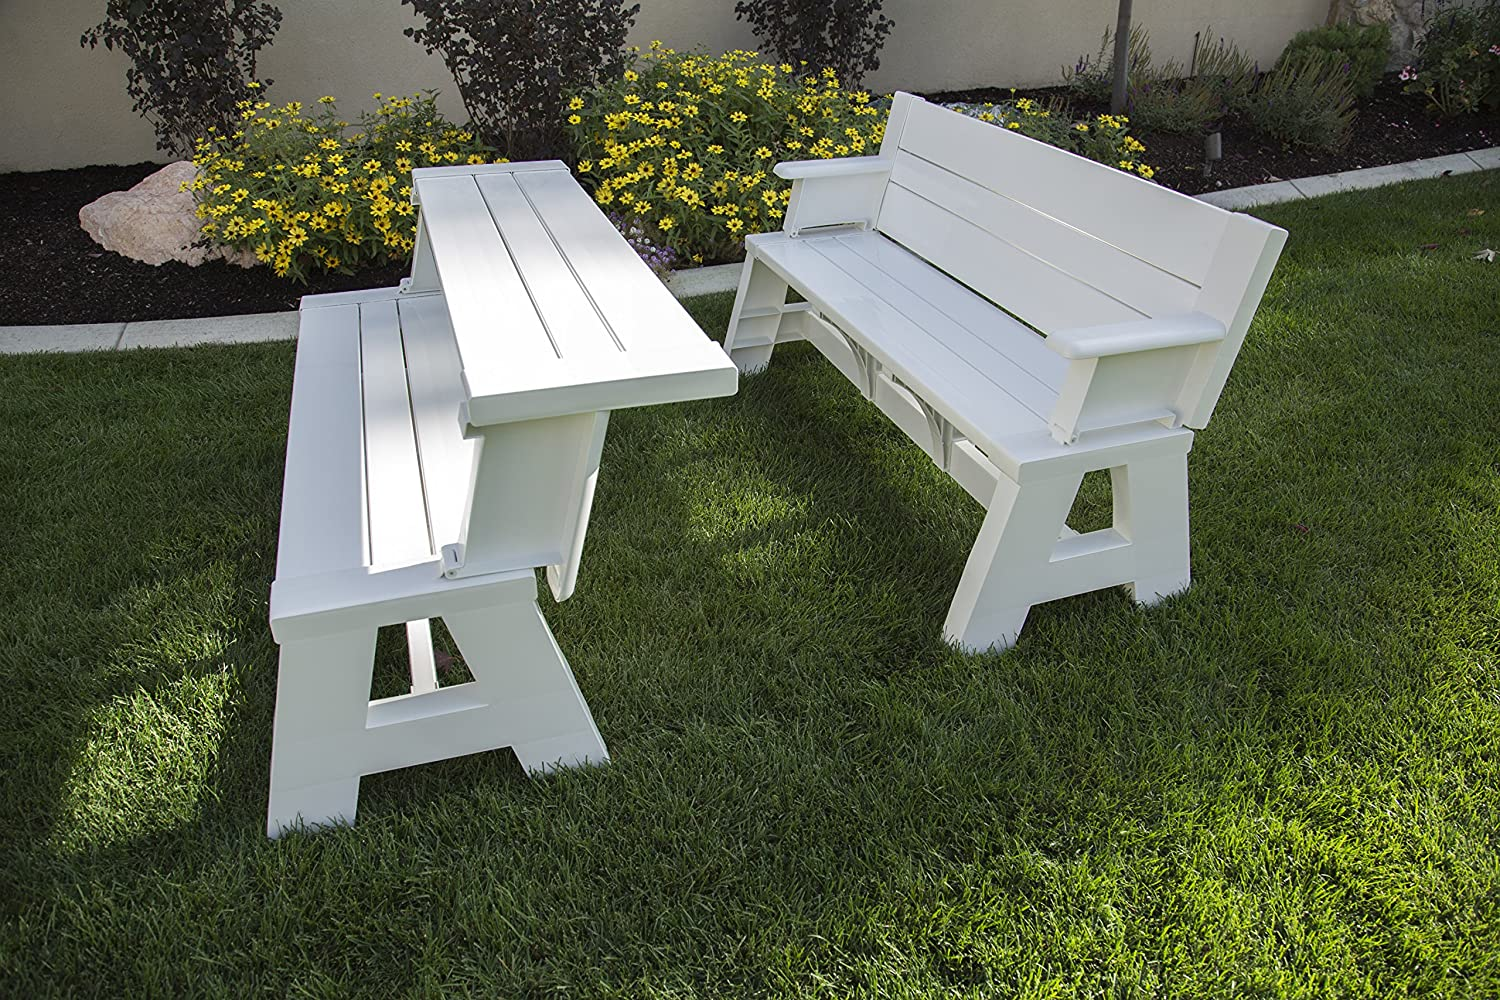 convert-a-bench, convert a bench, a bench, bench com, plastic bench that turns into a picnic table, convert a bench cushions, premiere products 5rcat resin convert a bench, bench to table conversion, plastic convertible bench picnic table, convert picnic table, premiere products, convert-a-bench